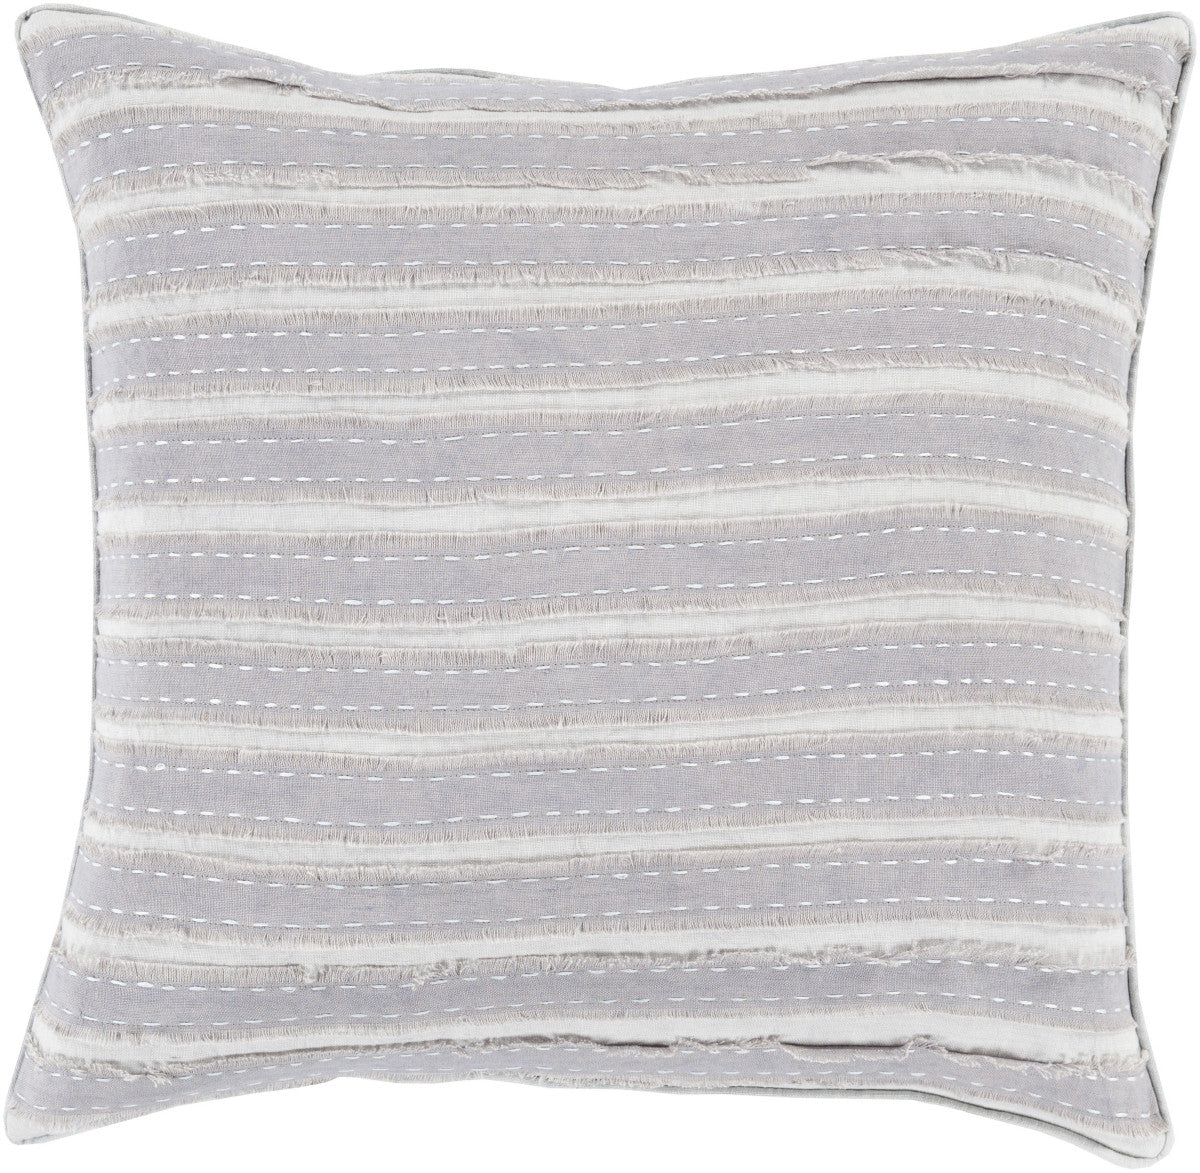 Surya Willow Charm and Comfort WO-004 Pillow